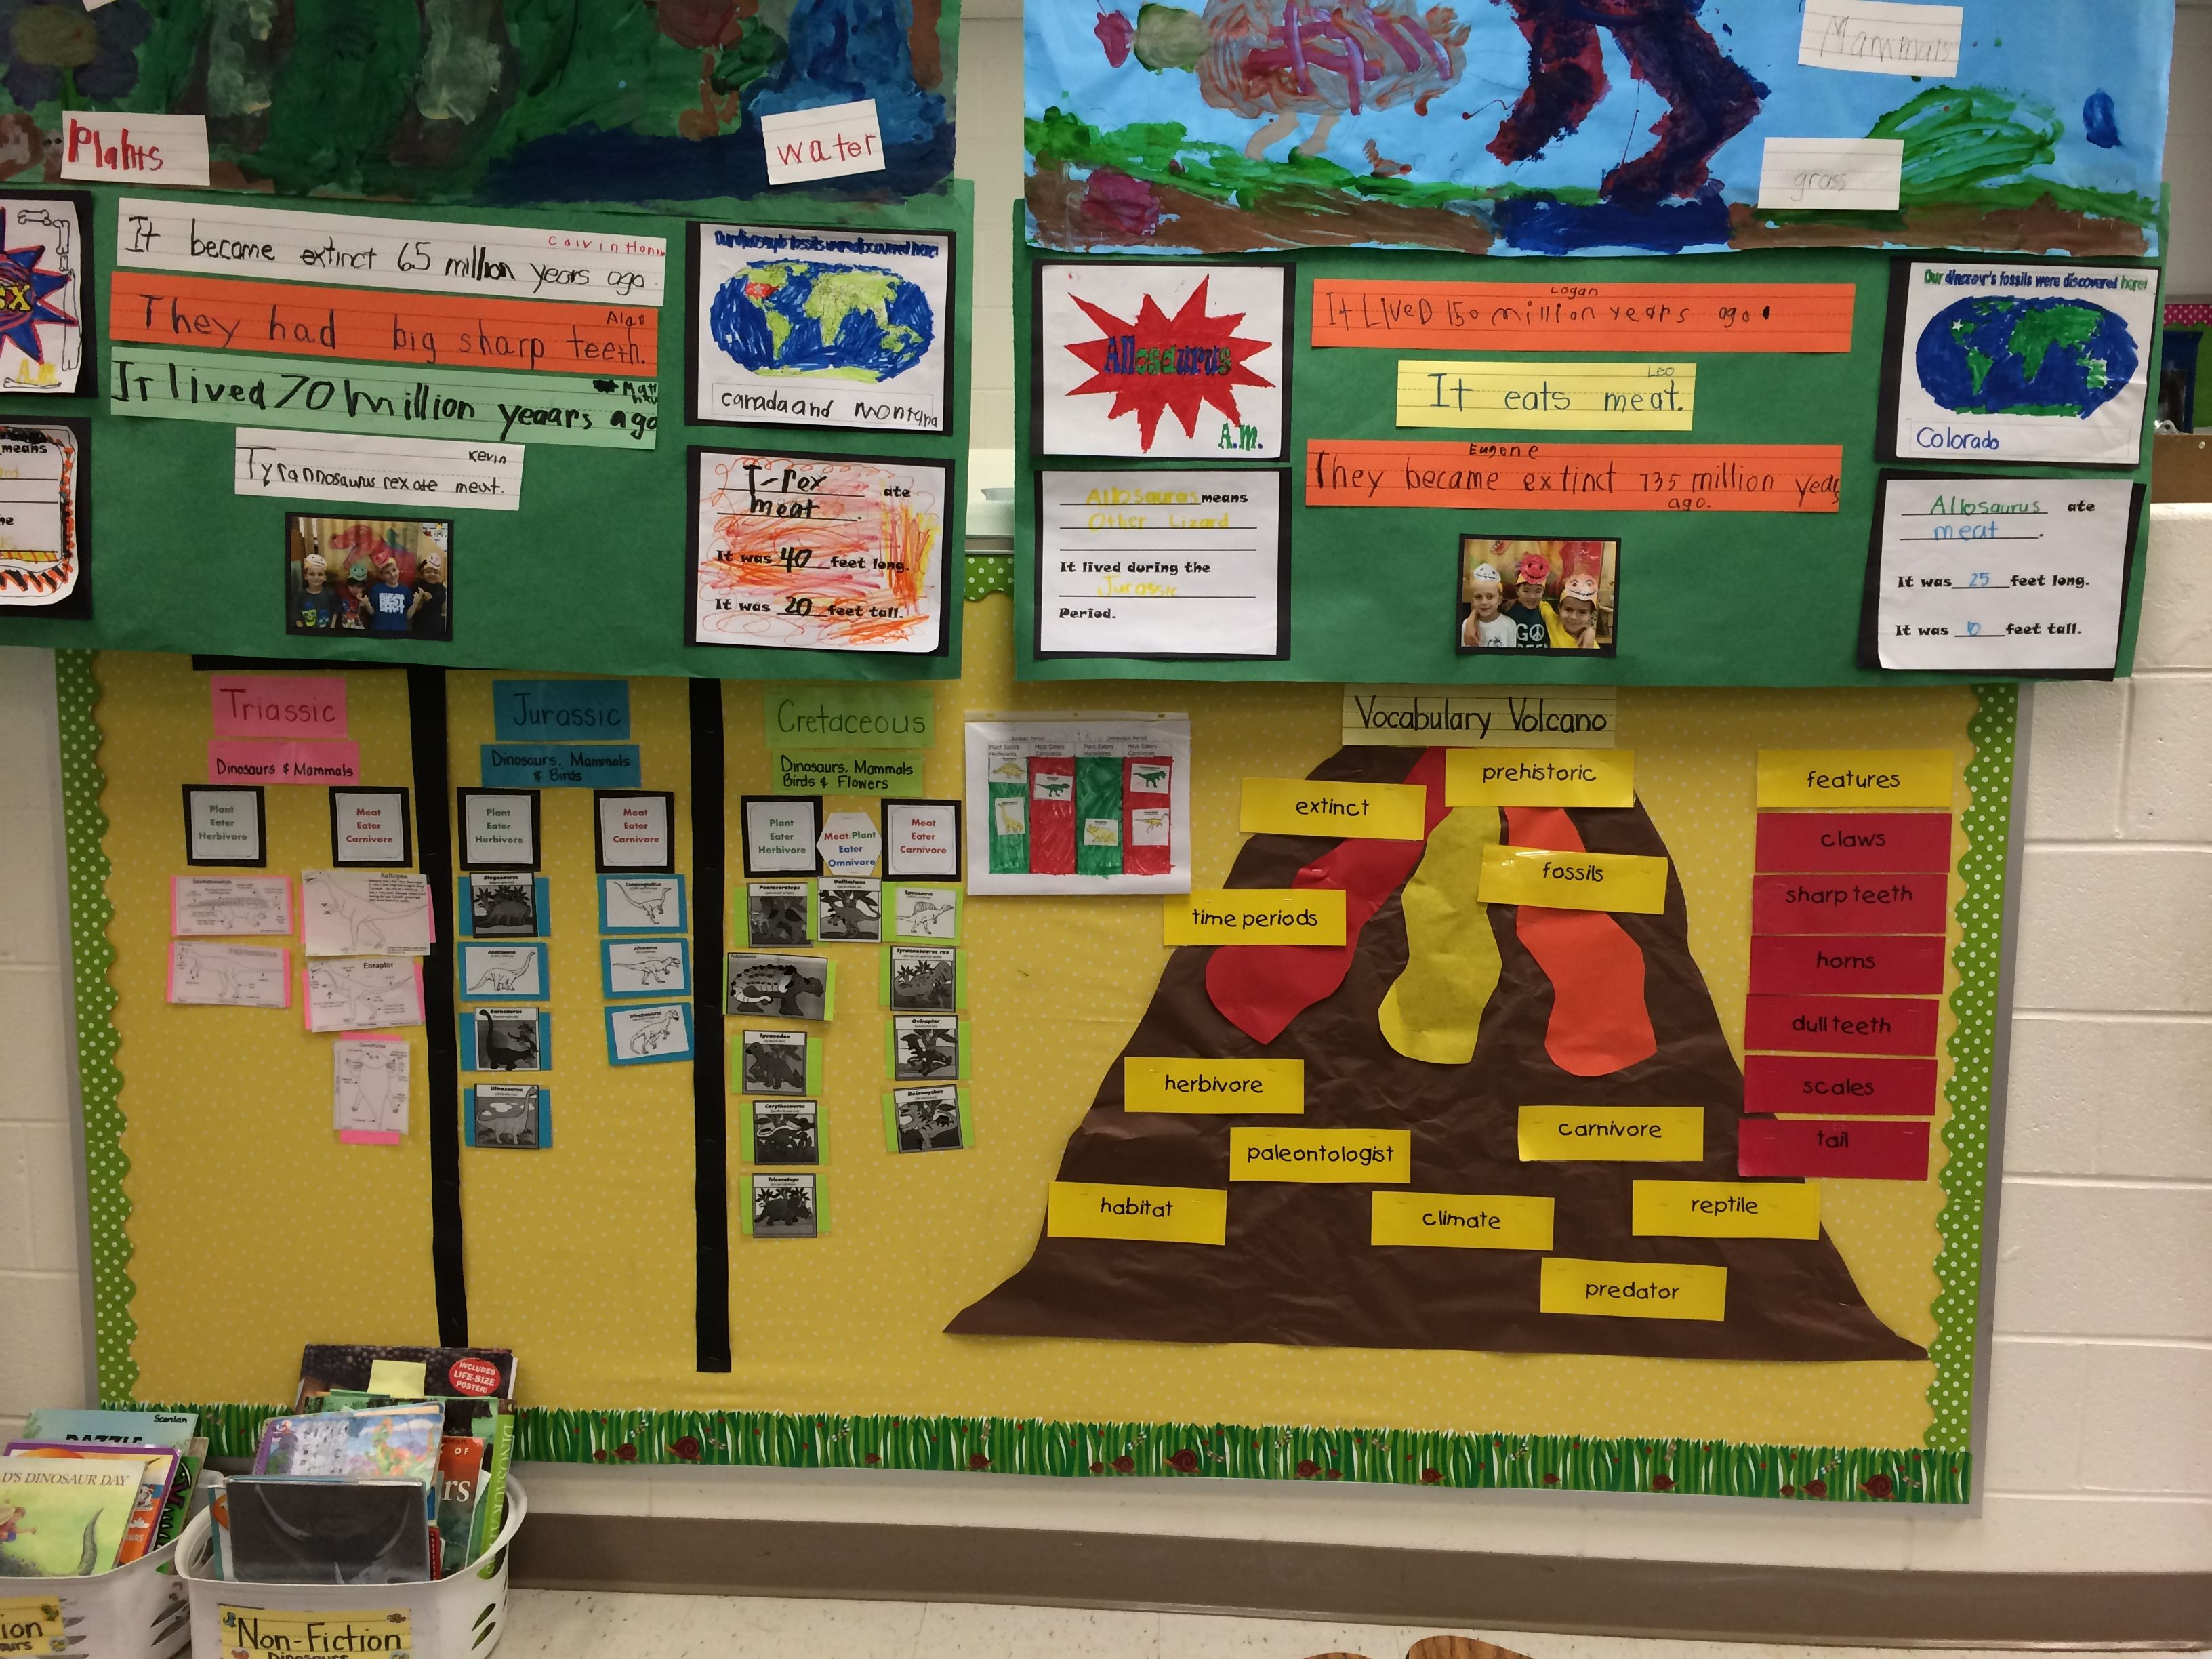 Bulletin Board For Time Periods And The Vocabulary Volcano